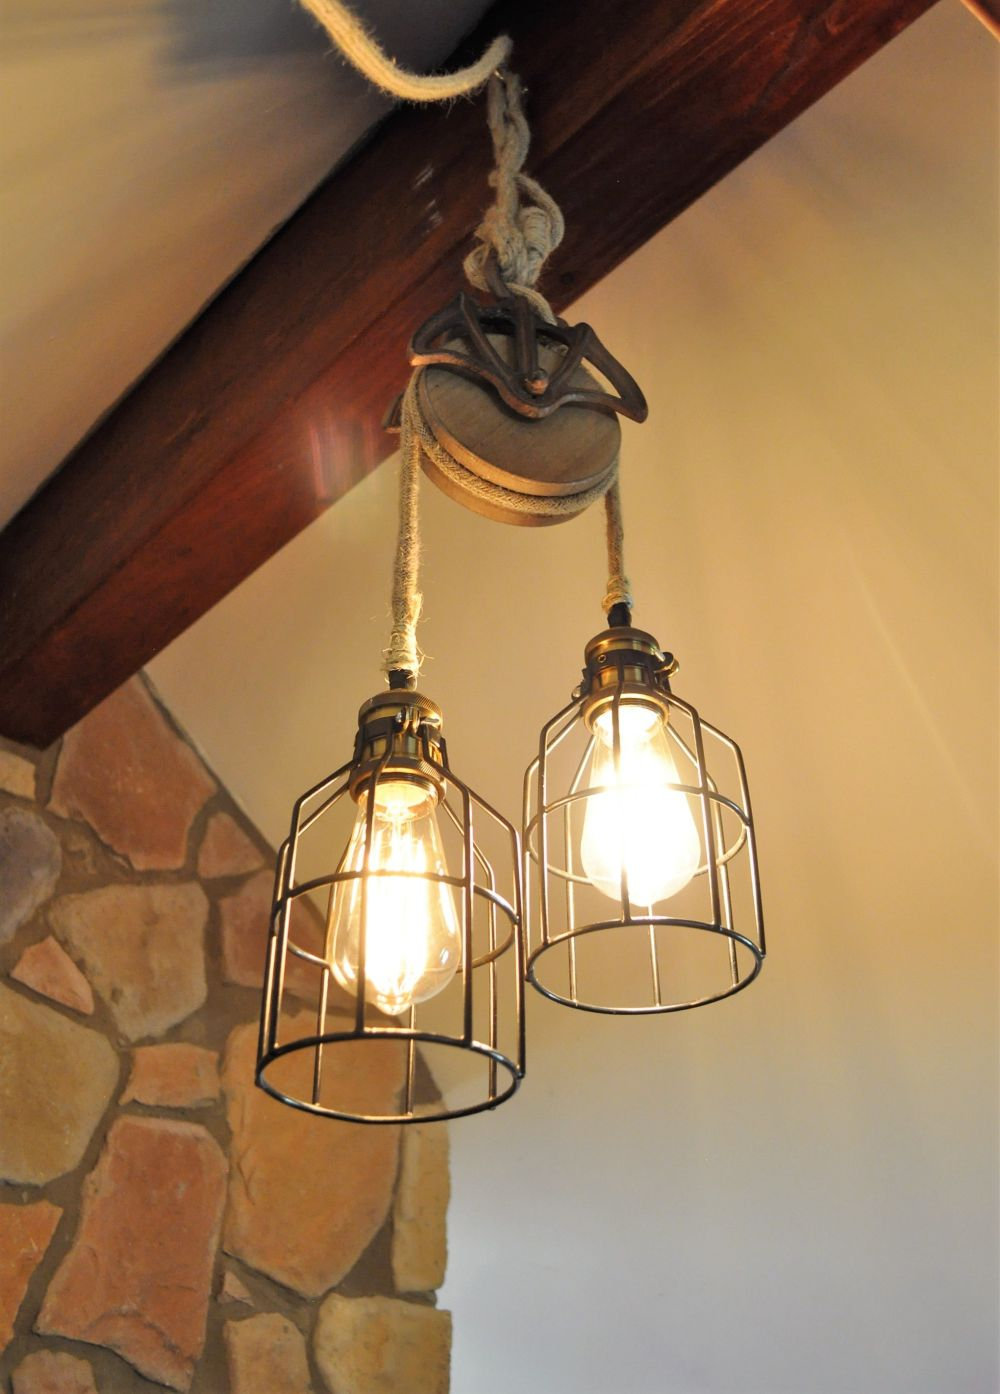 25 Farmhouse Lighting Ideas For Warm